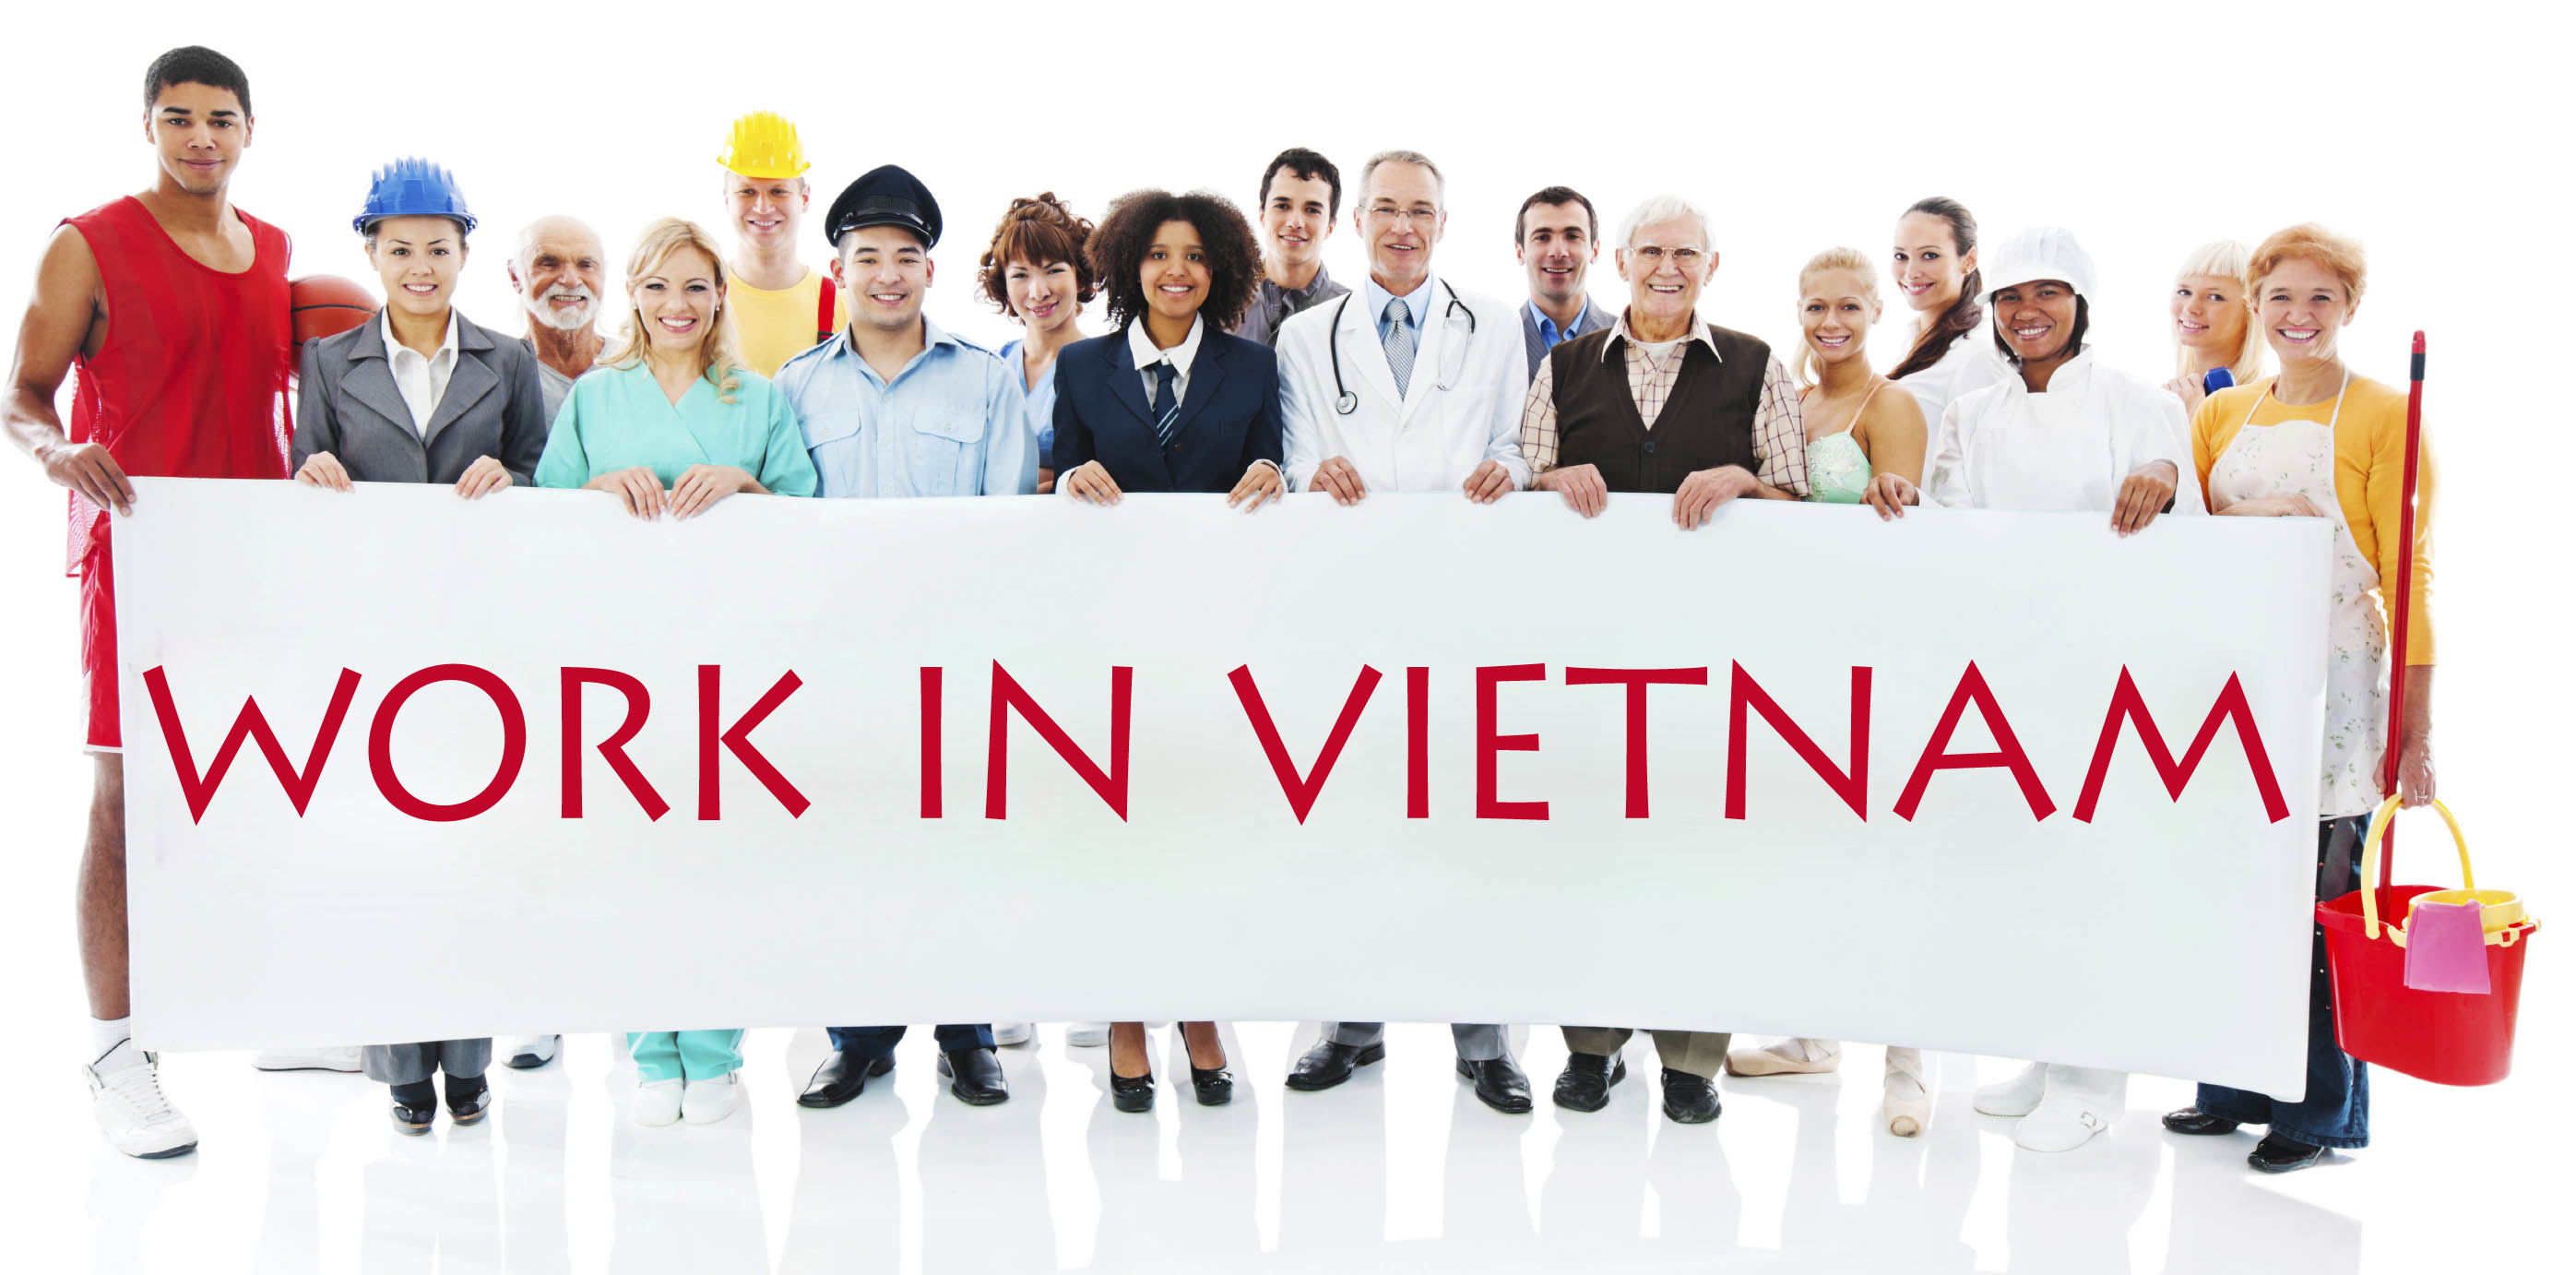 Foreign workers in vietnam